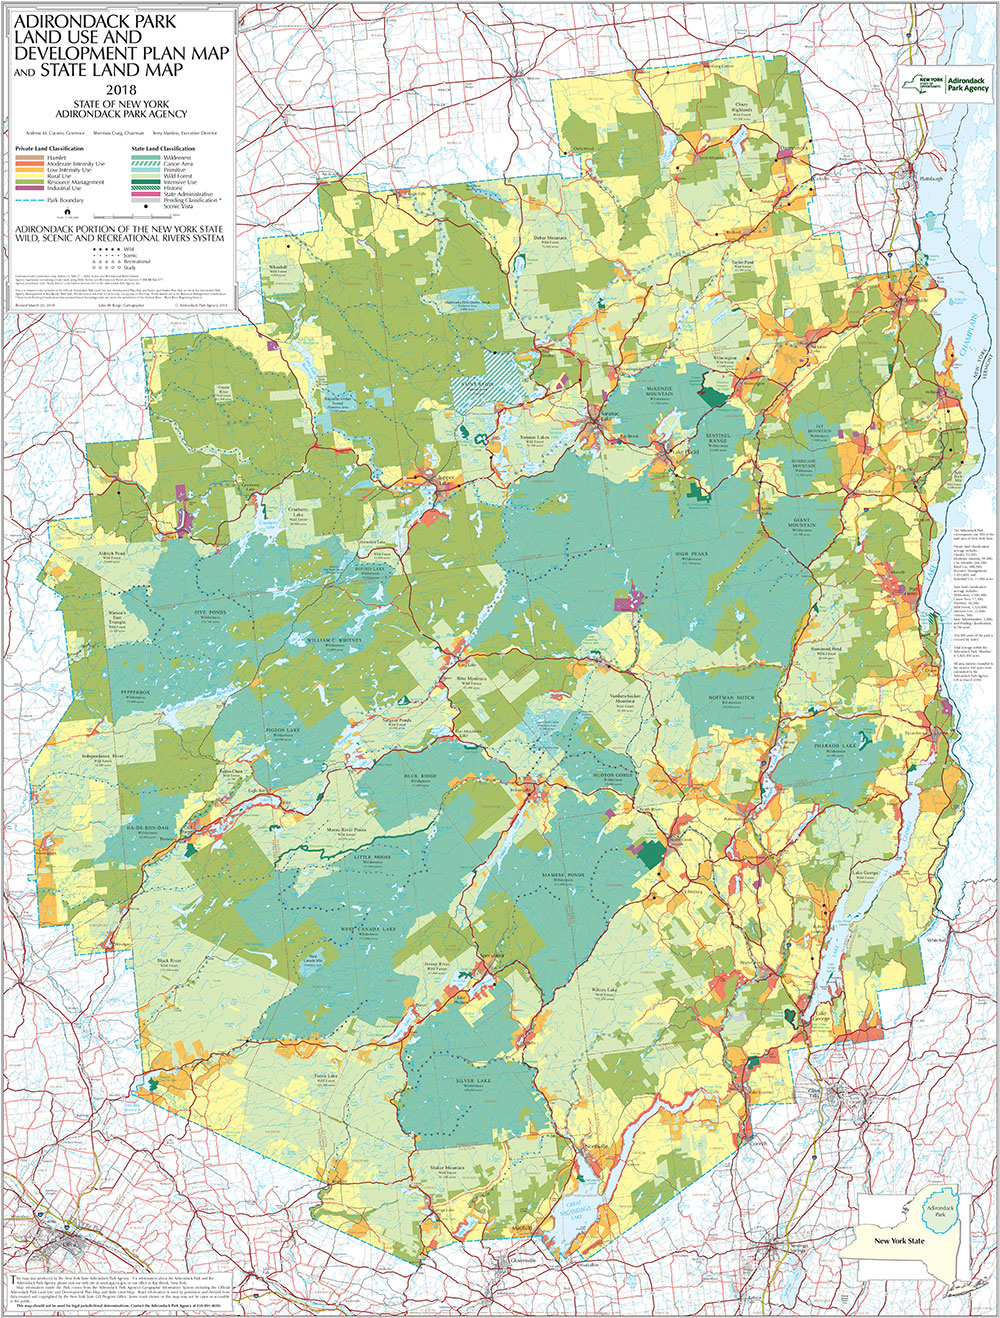 Adirondack Park Agency Maps and GIS on topographic mapping, invasive species mapping, geo mapping, database mapping, environmental mapping, technology mapping, data mapping, landscape architecture mapping, spatial mapping, land suitability mapping, internet mapping, gps mapping, community development mapping, communication mapping, web mapping, geospatial mapping, training mapping, network mapping,